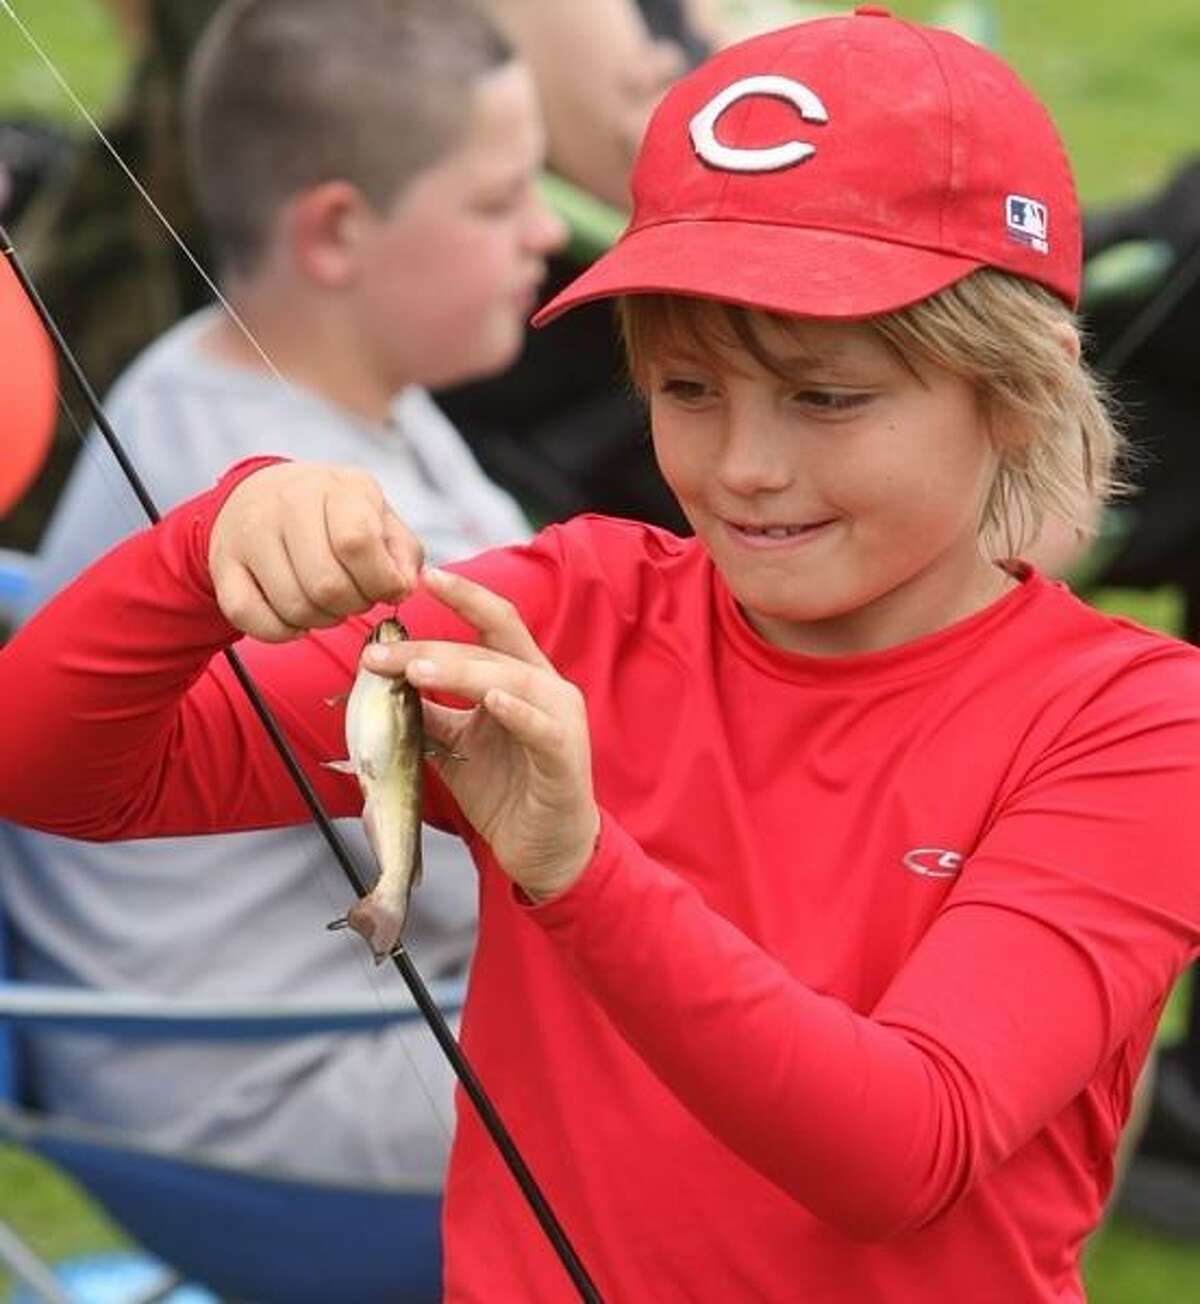 PHOTO BY JOHN HAEGER @ ONEIDAPHOTO ON TWITTER/ONEIDA DAILY DISPATCH Shane Plack ,10, of Canastota works to take a fish off the hook during the annual fishing derby in Sherrill on Saturday, May 18, 2013.